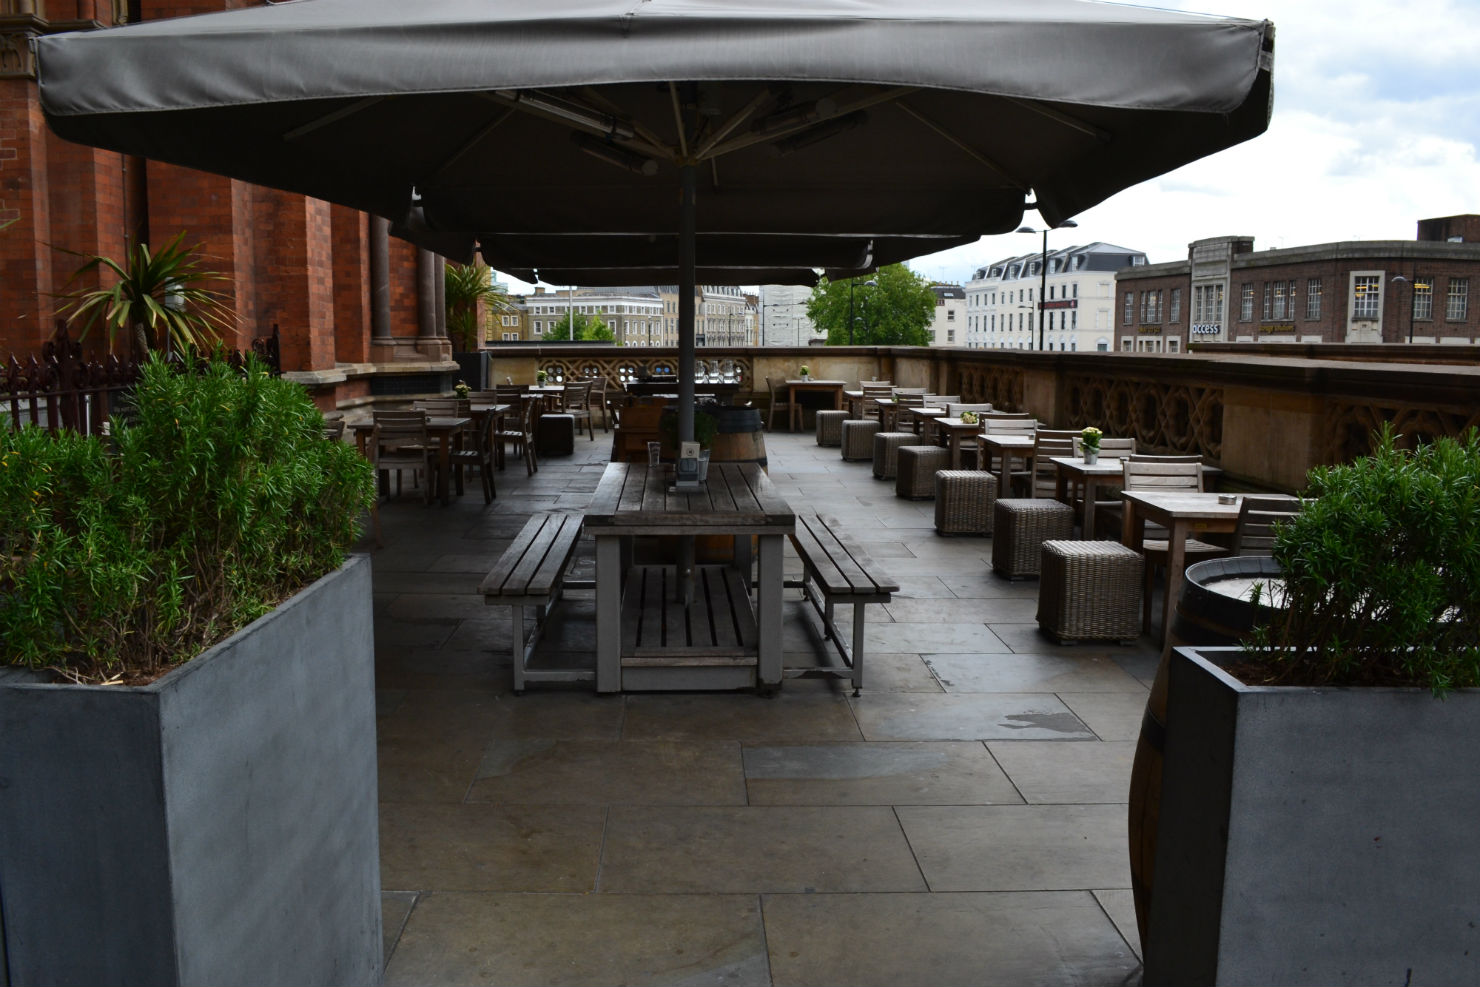 Useful and enormous: the terrace at the Sir john Betjeman. Photo: SE